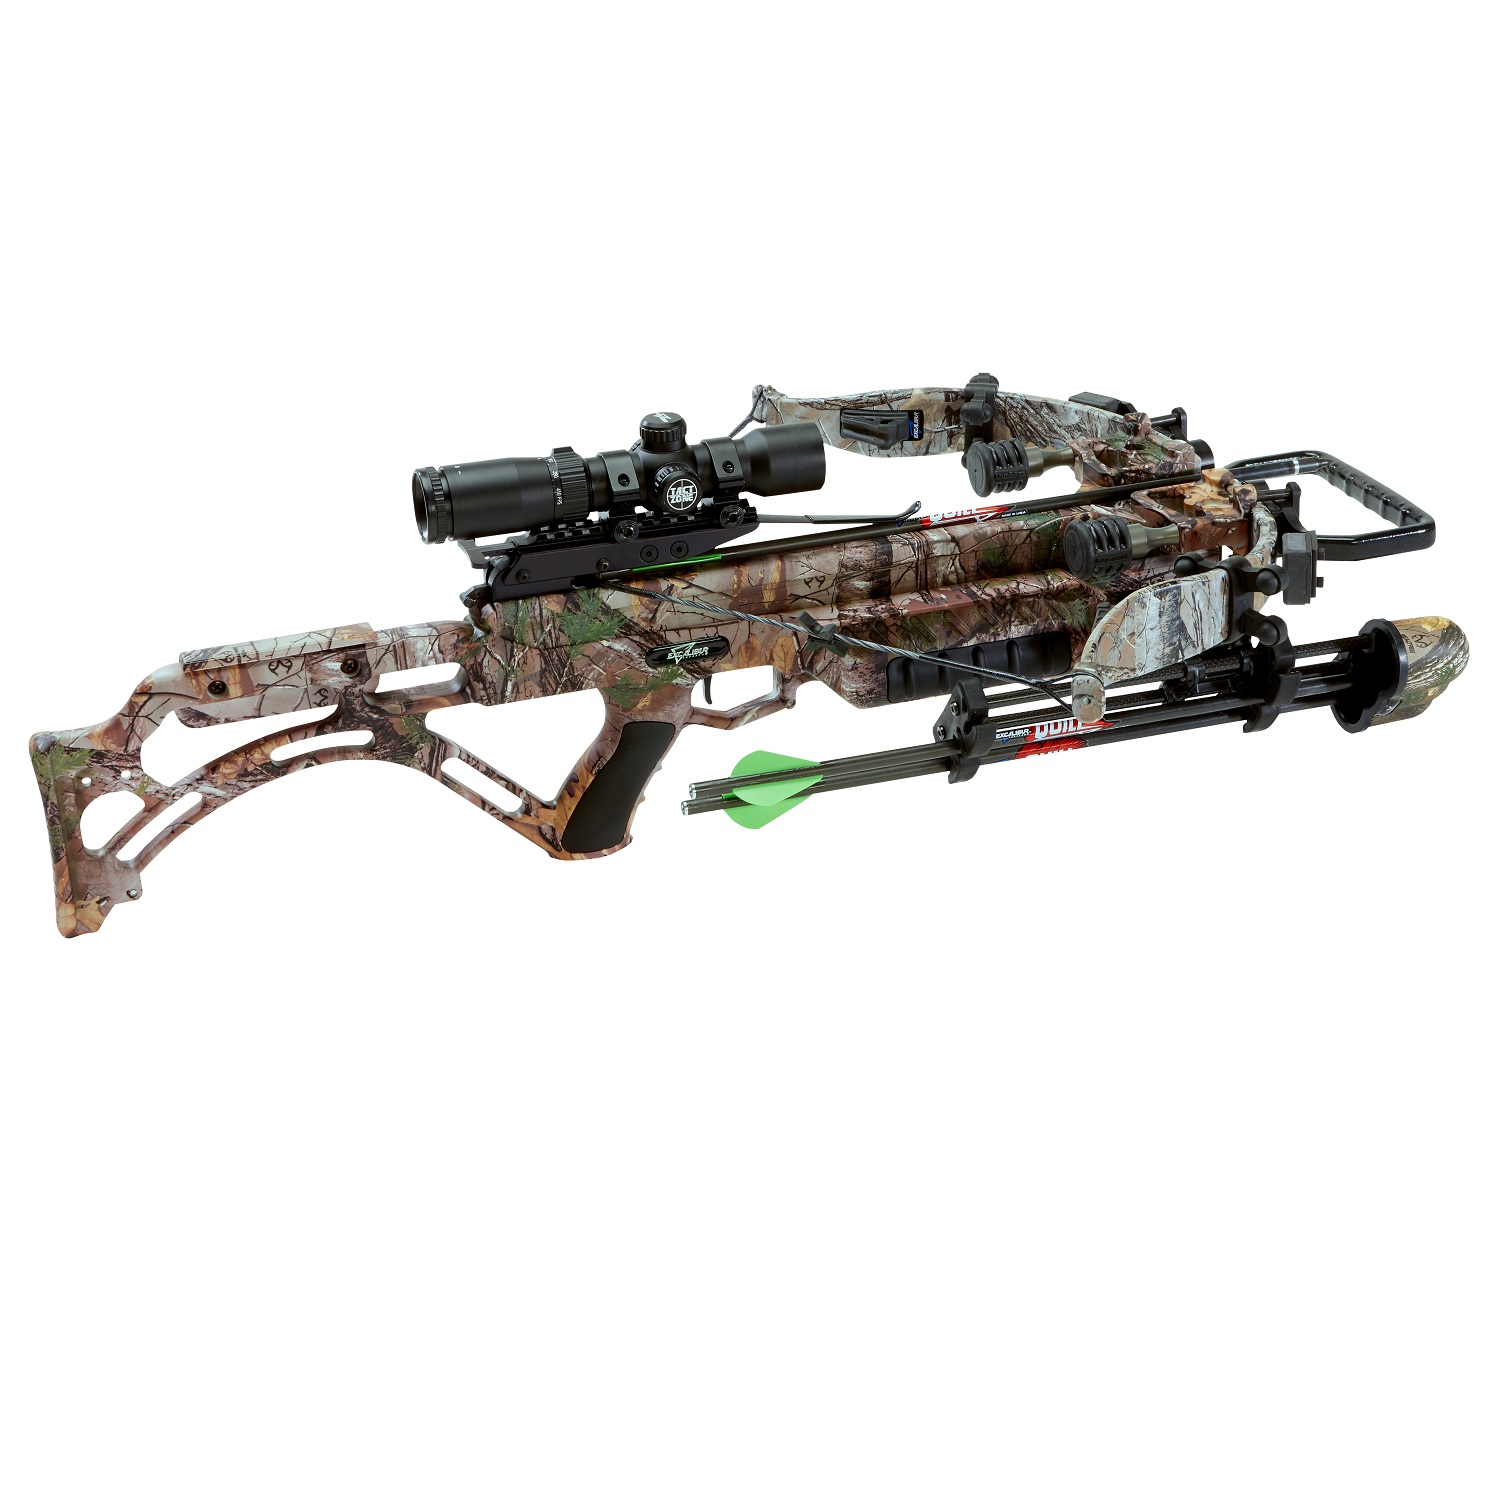 Excalibur Crossbow E95857 Micro Suppresso by Excalibur Crossbow